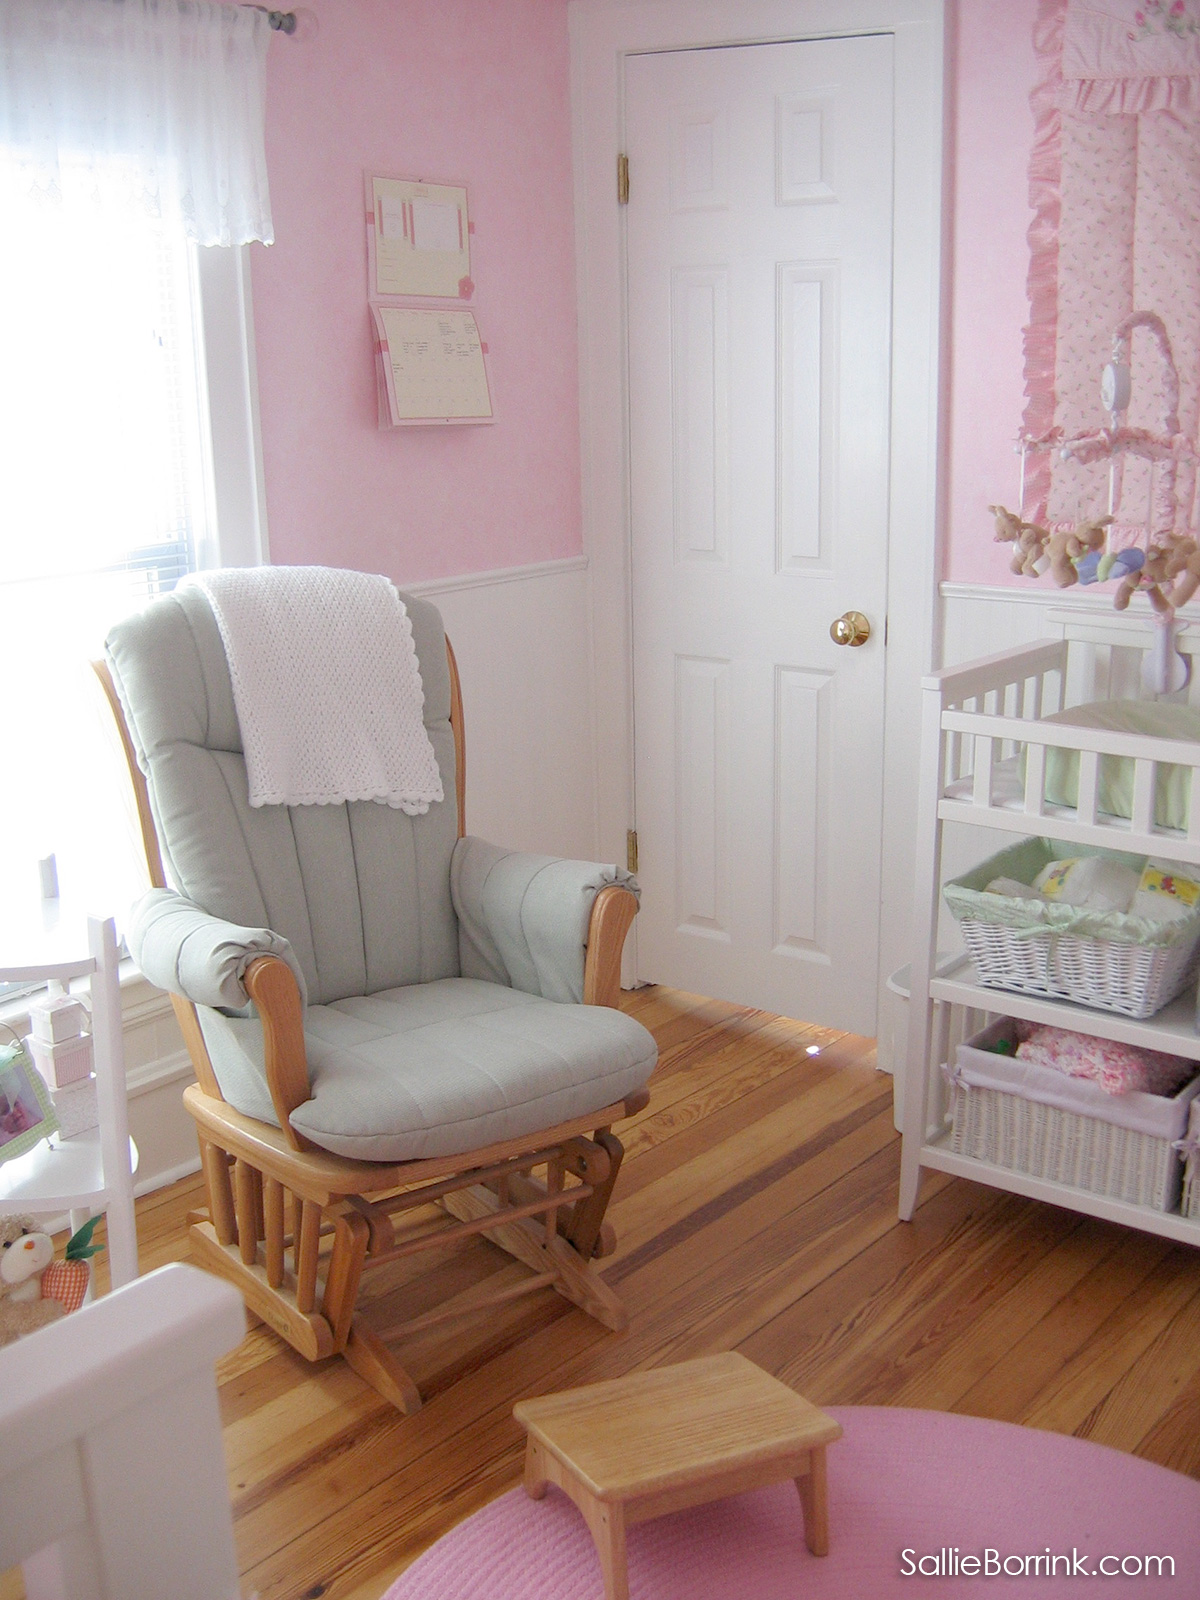 Glider chair with light green cushions in pink baby room with white woodwork, white changing table, and white bed.